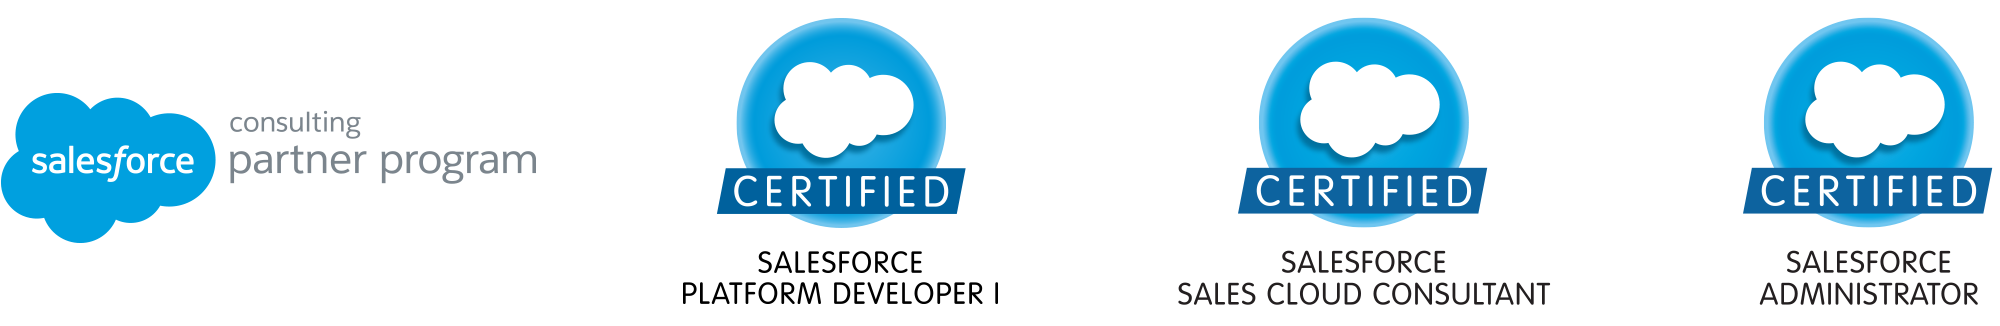 Salesforce Certified Sales Cloud Consultants, Administrators, Platform Developers and part of the Salesforce Consulting Partner Program